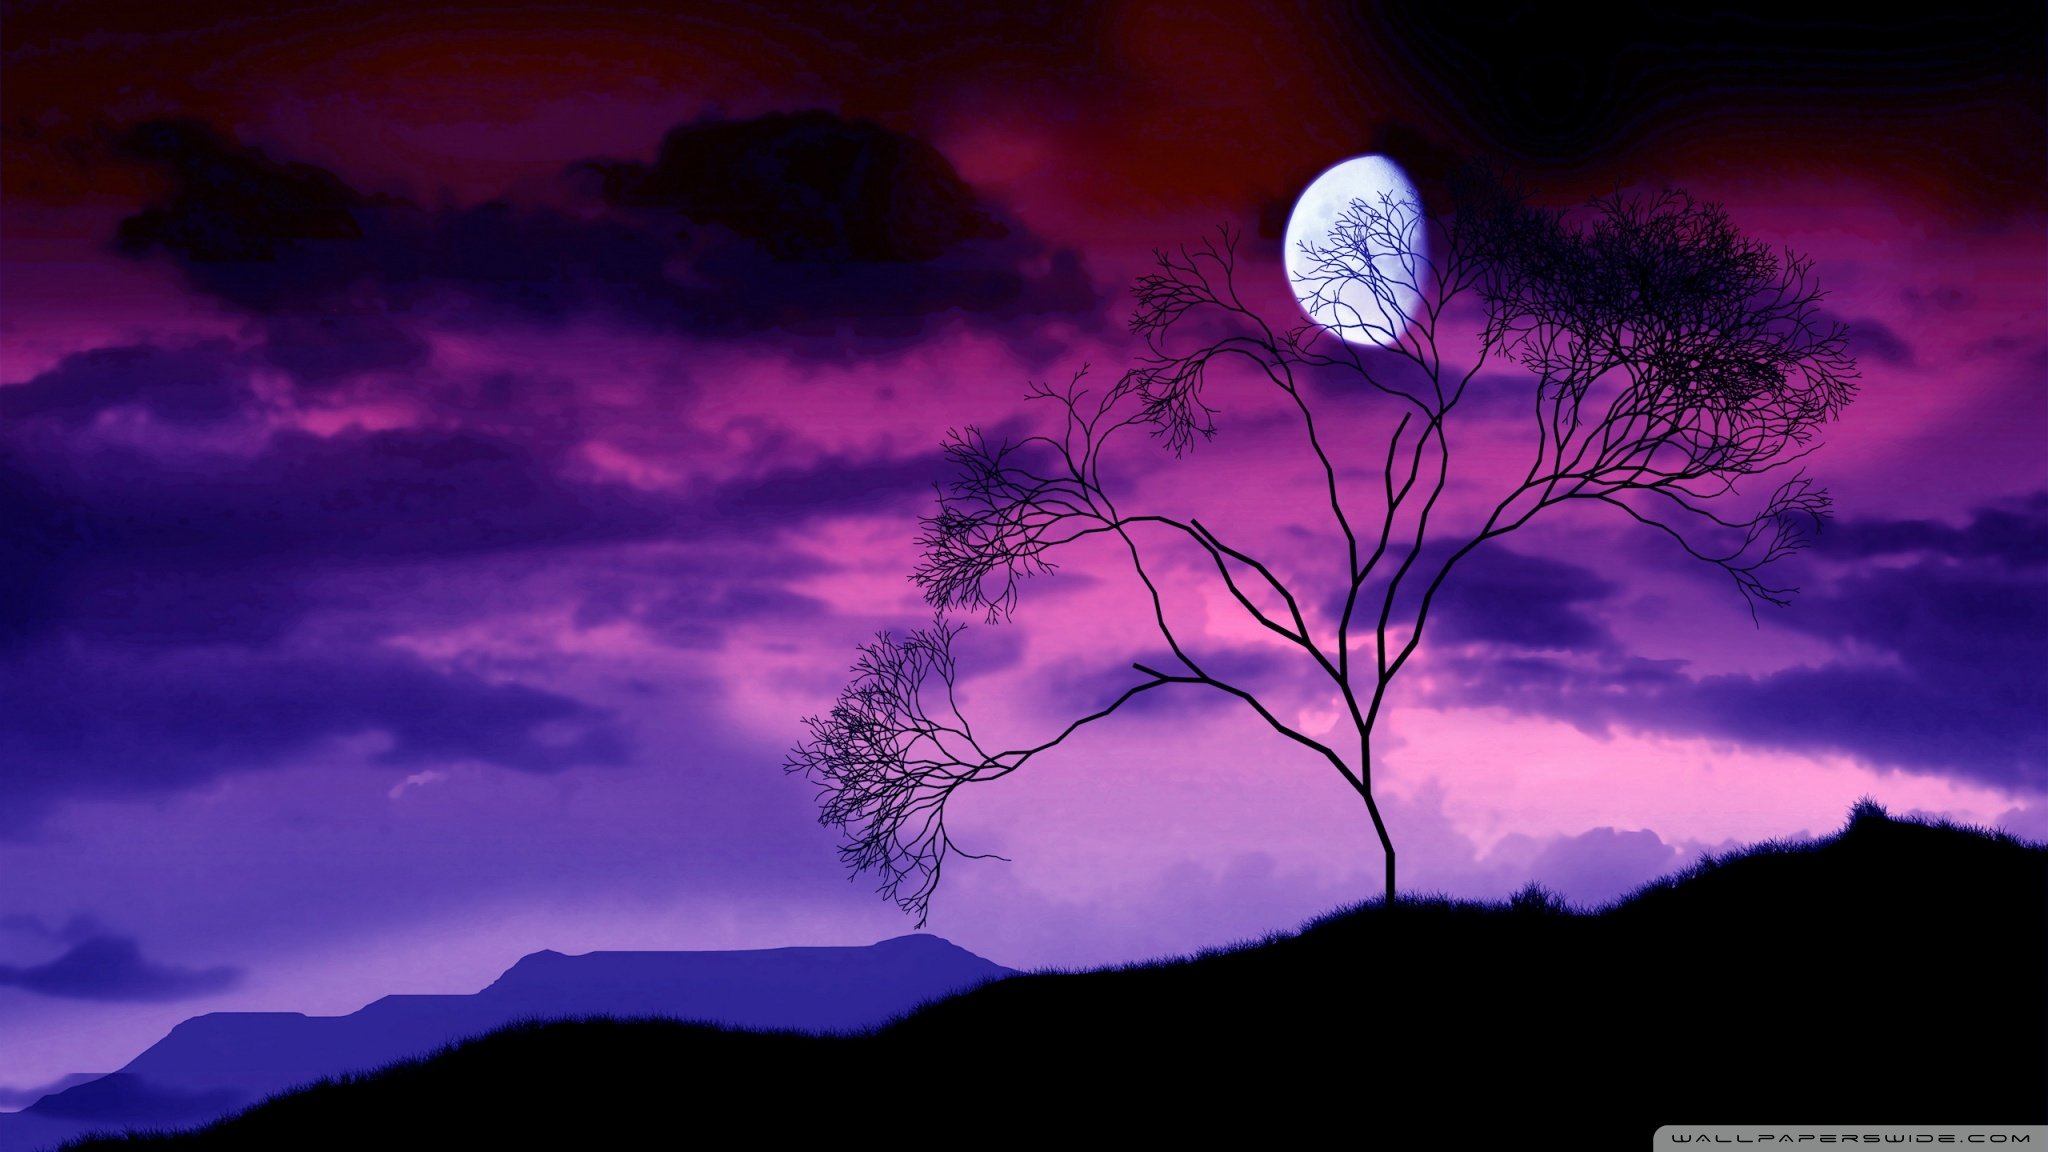 Hd 16 - - Night Sky Background With Moon , HD Wallpaper & Backgrounds